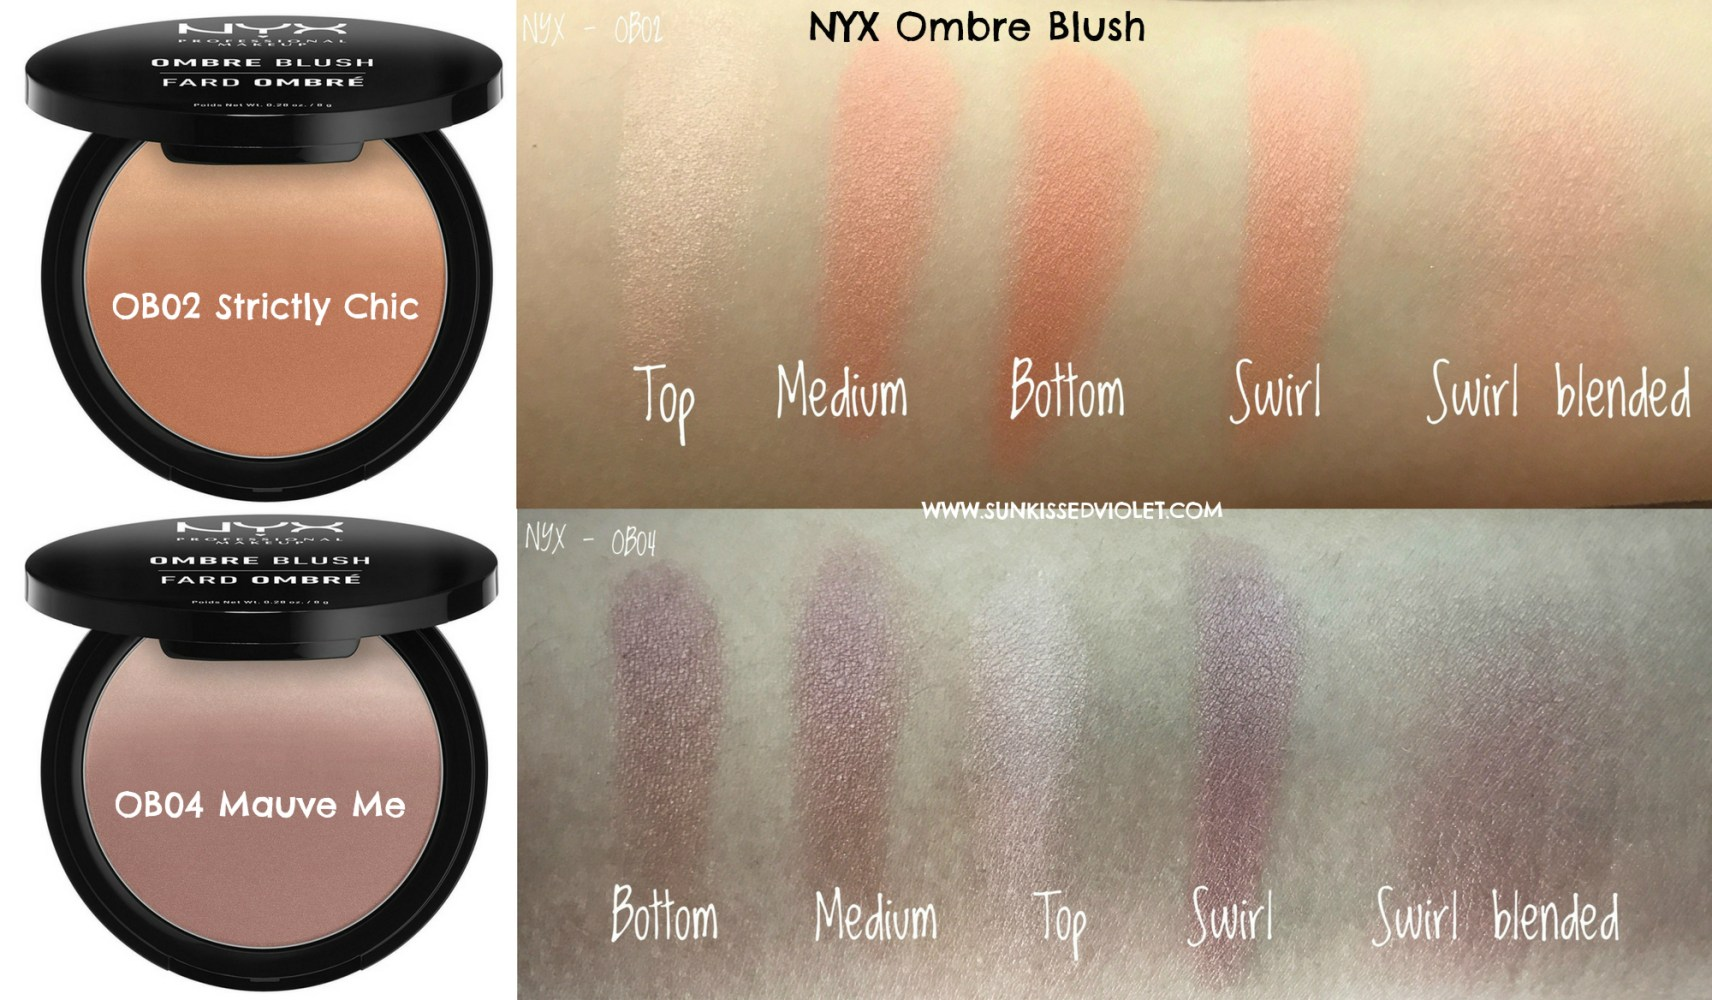 NYX Ombre Blush Strictly Chic Mauve Me Review Swatches